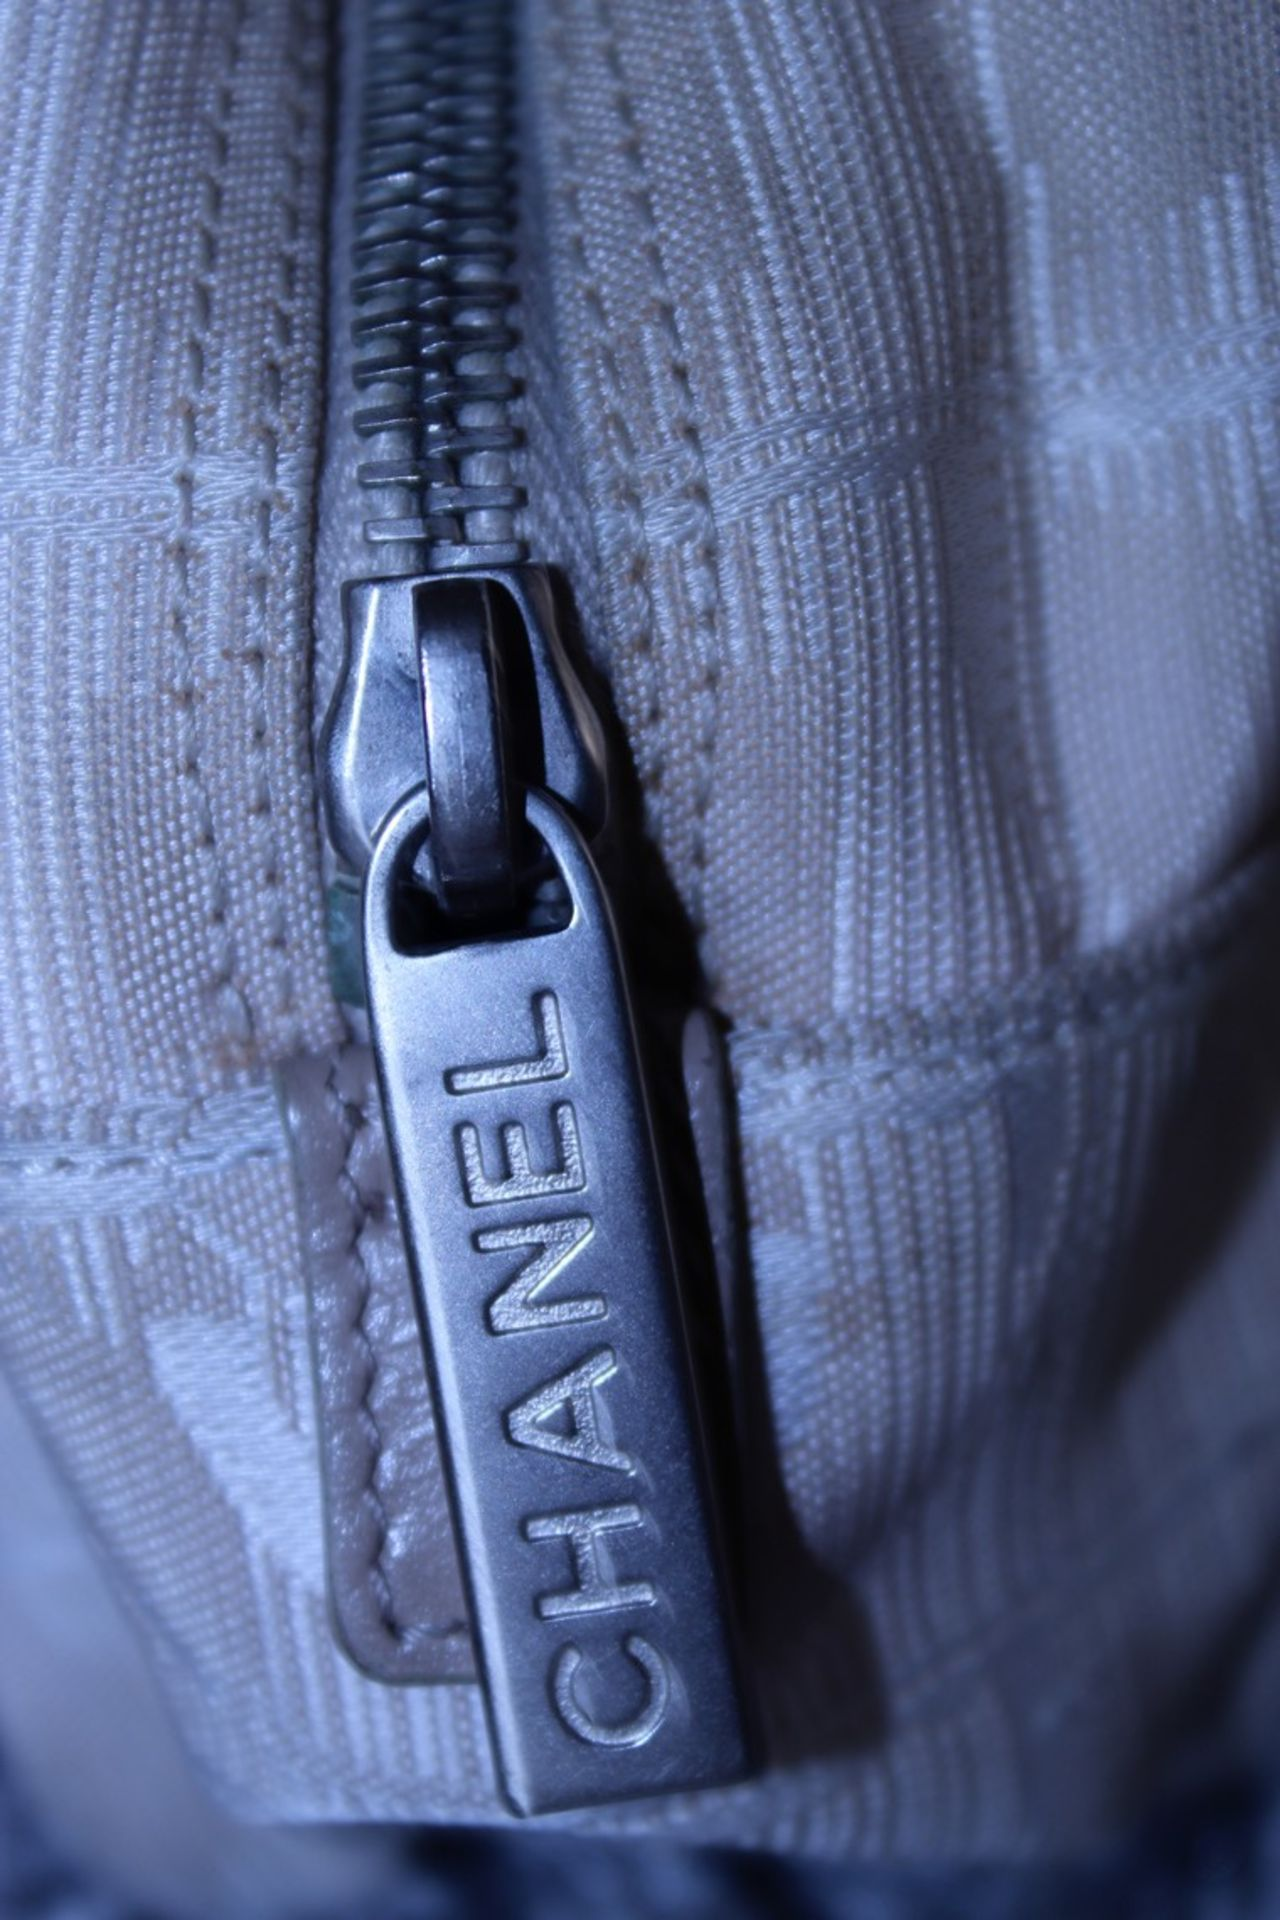 RRP £1200 Chanel Travel Line Bowling Shoulder Bag In Beige Canvas With Beige Canvas Handles. - Image 3 of 3